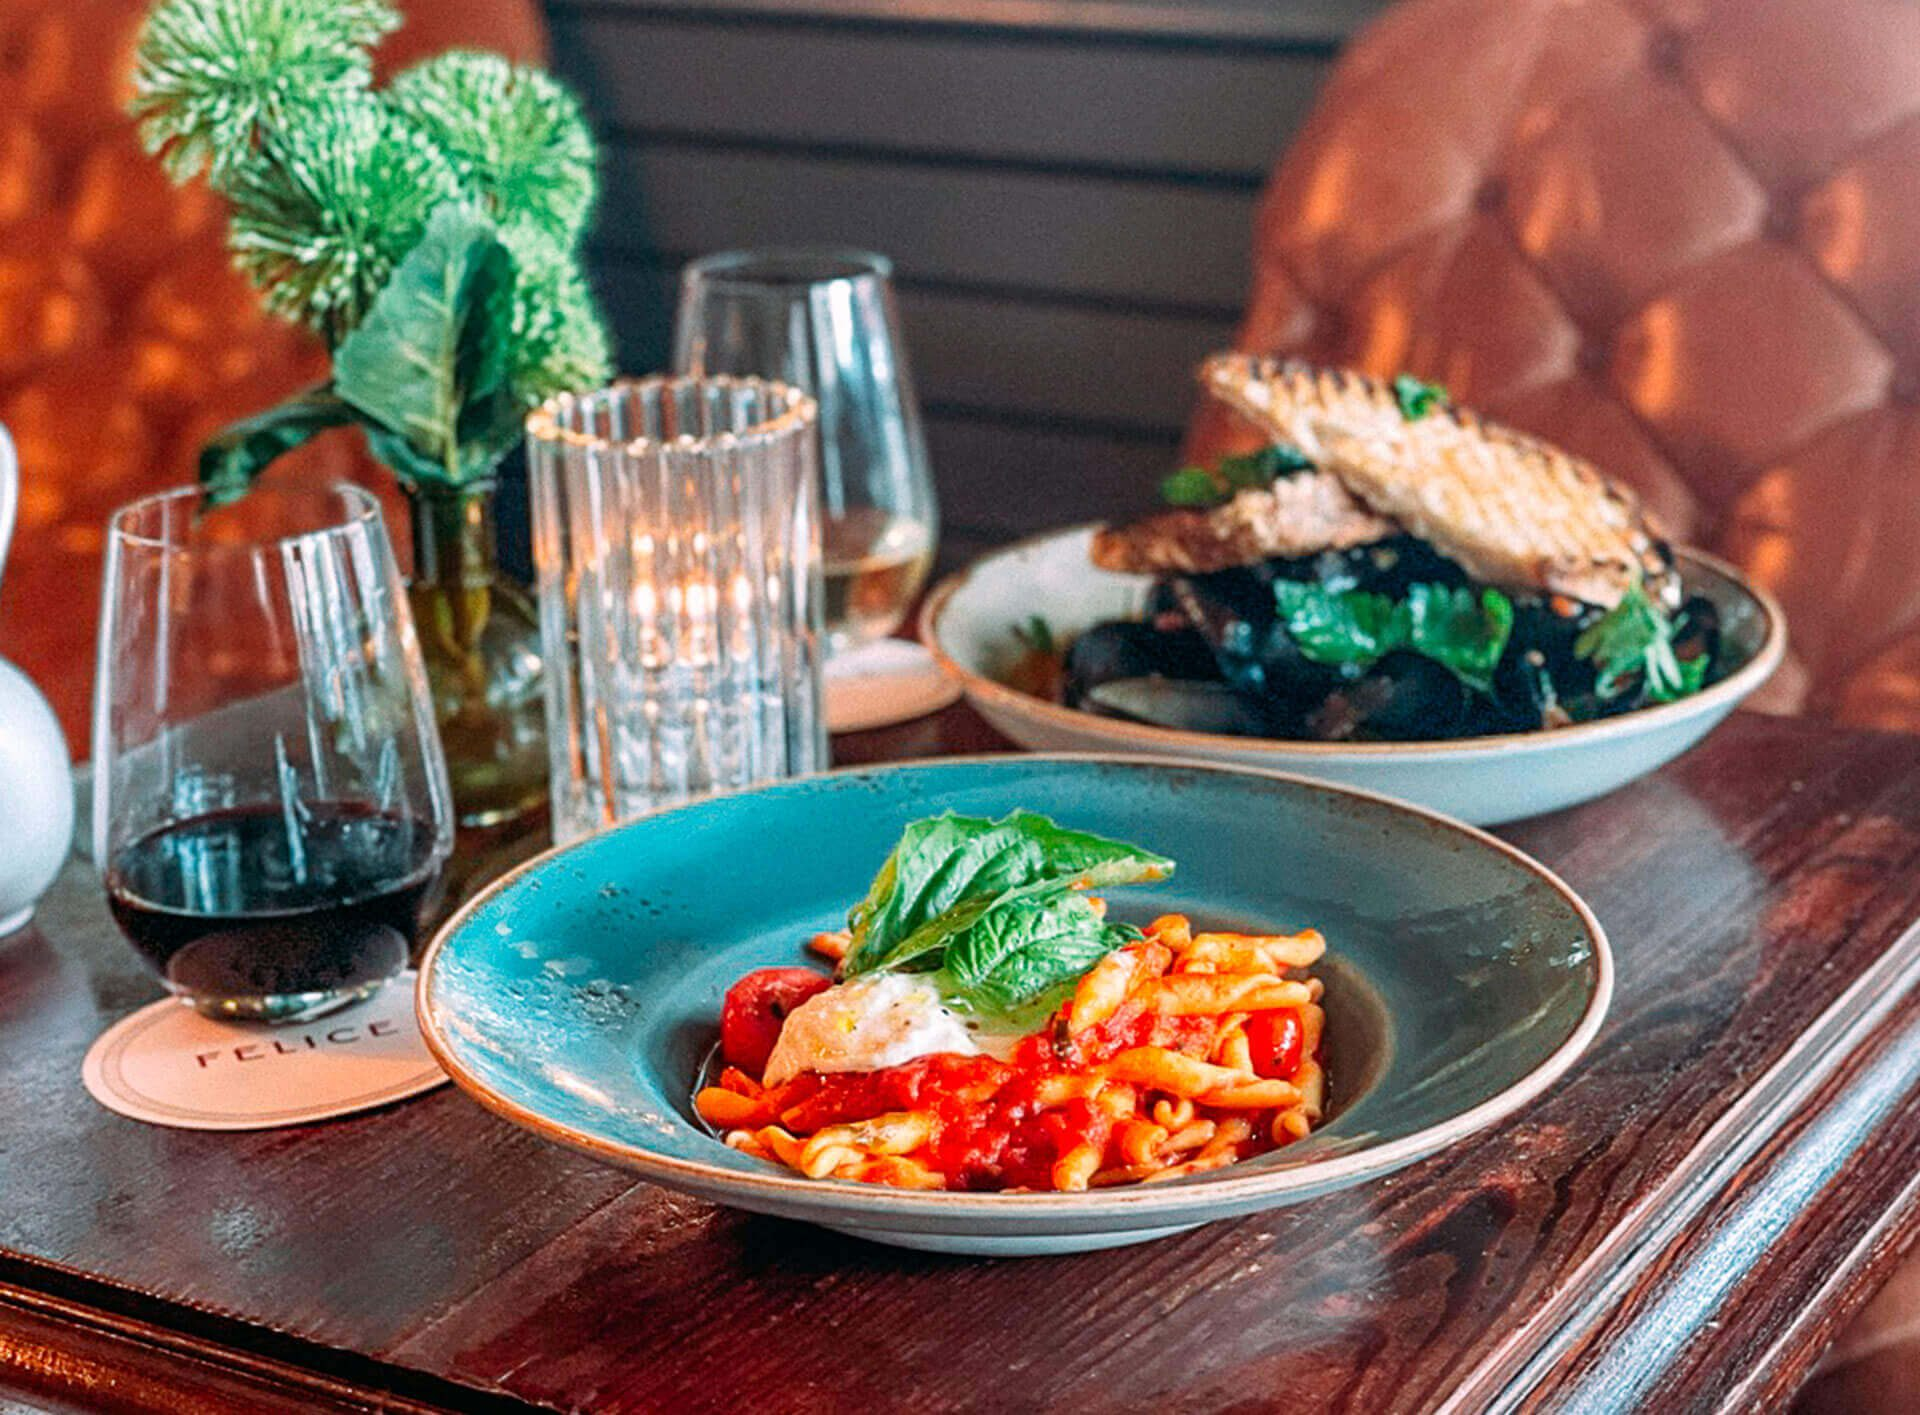 Felice Ristorante & Wine Bar: Takeout and Delivery